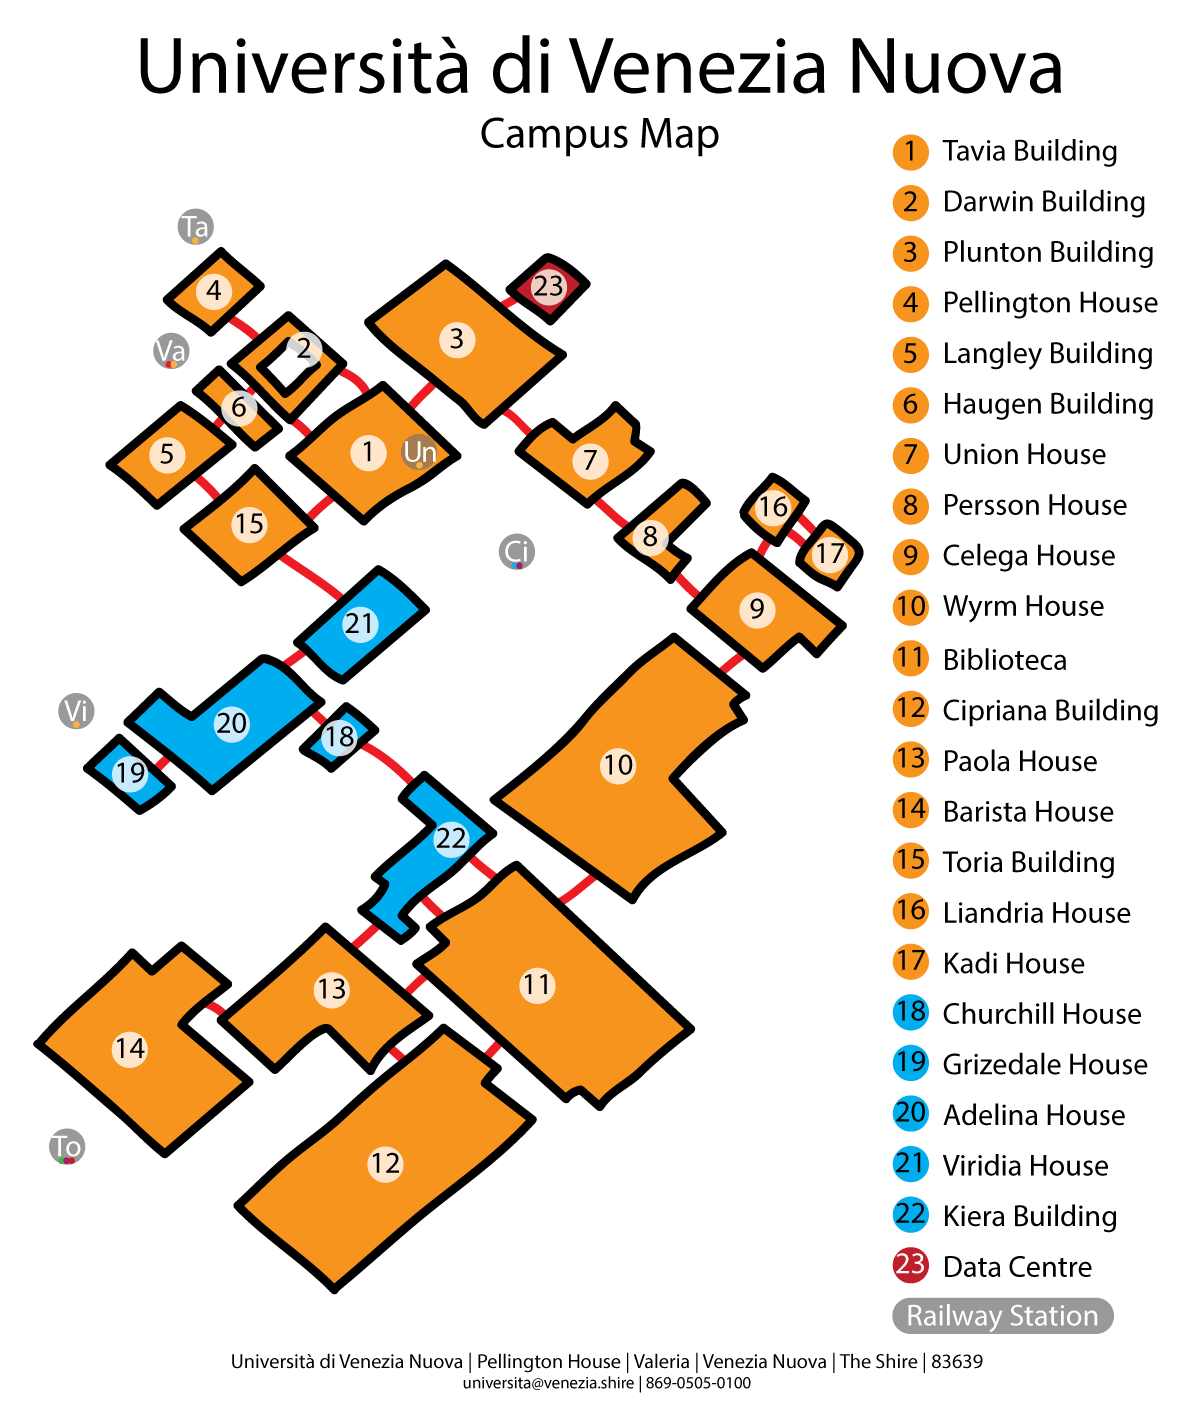 Universita-di-venezia-nuova-campus-map.png